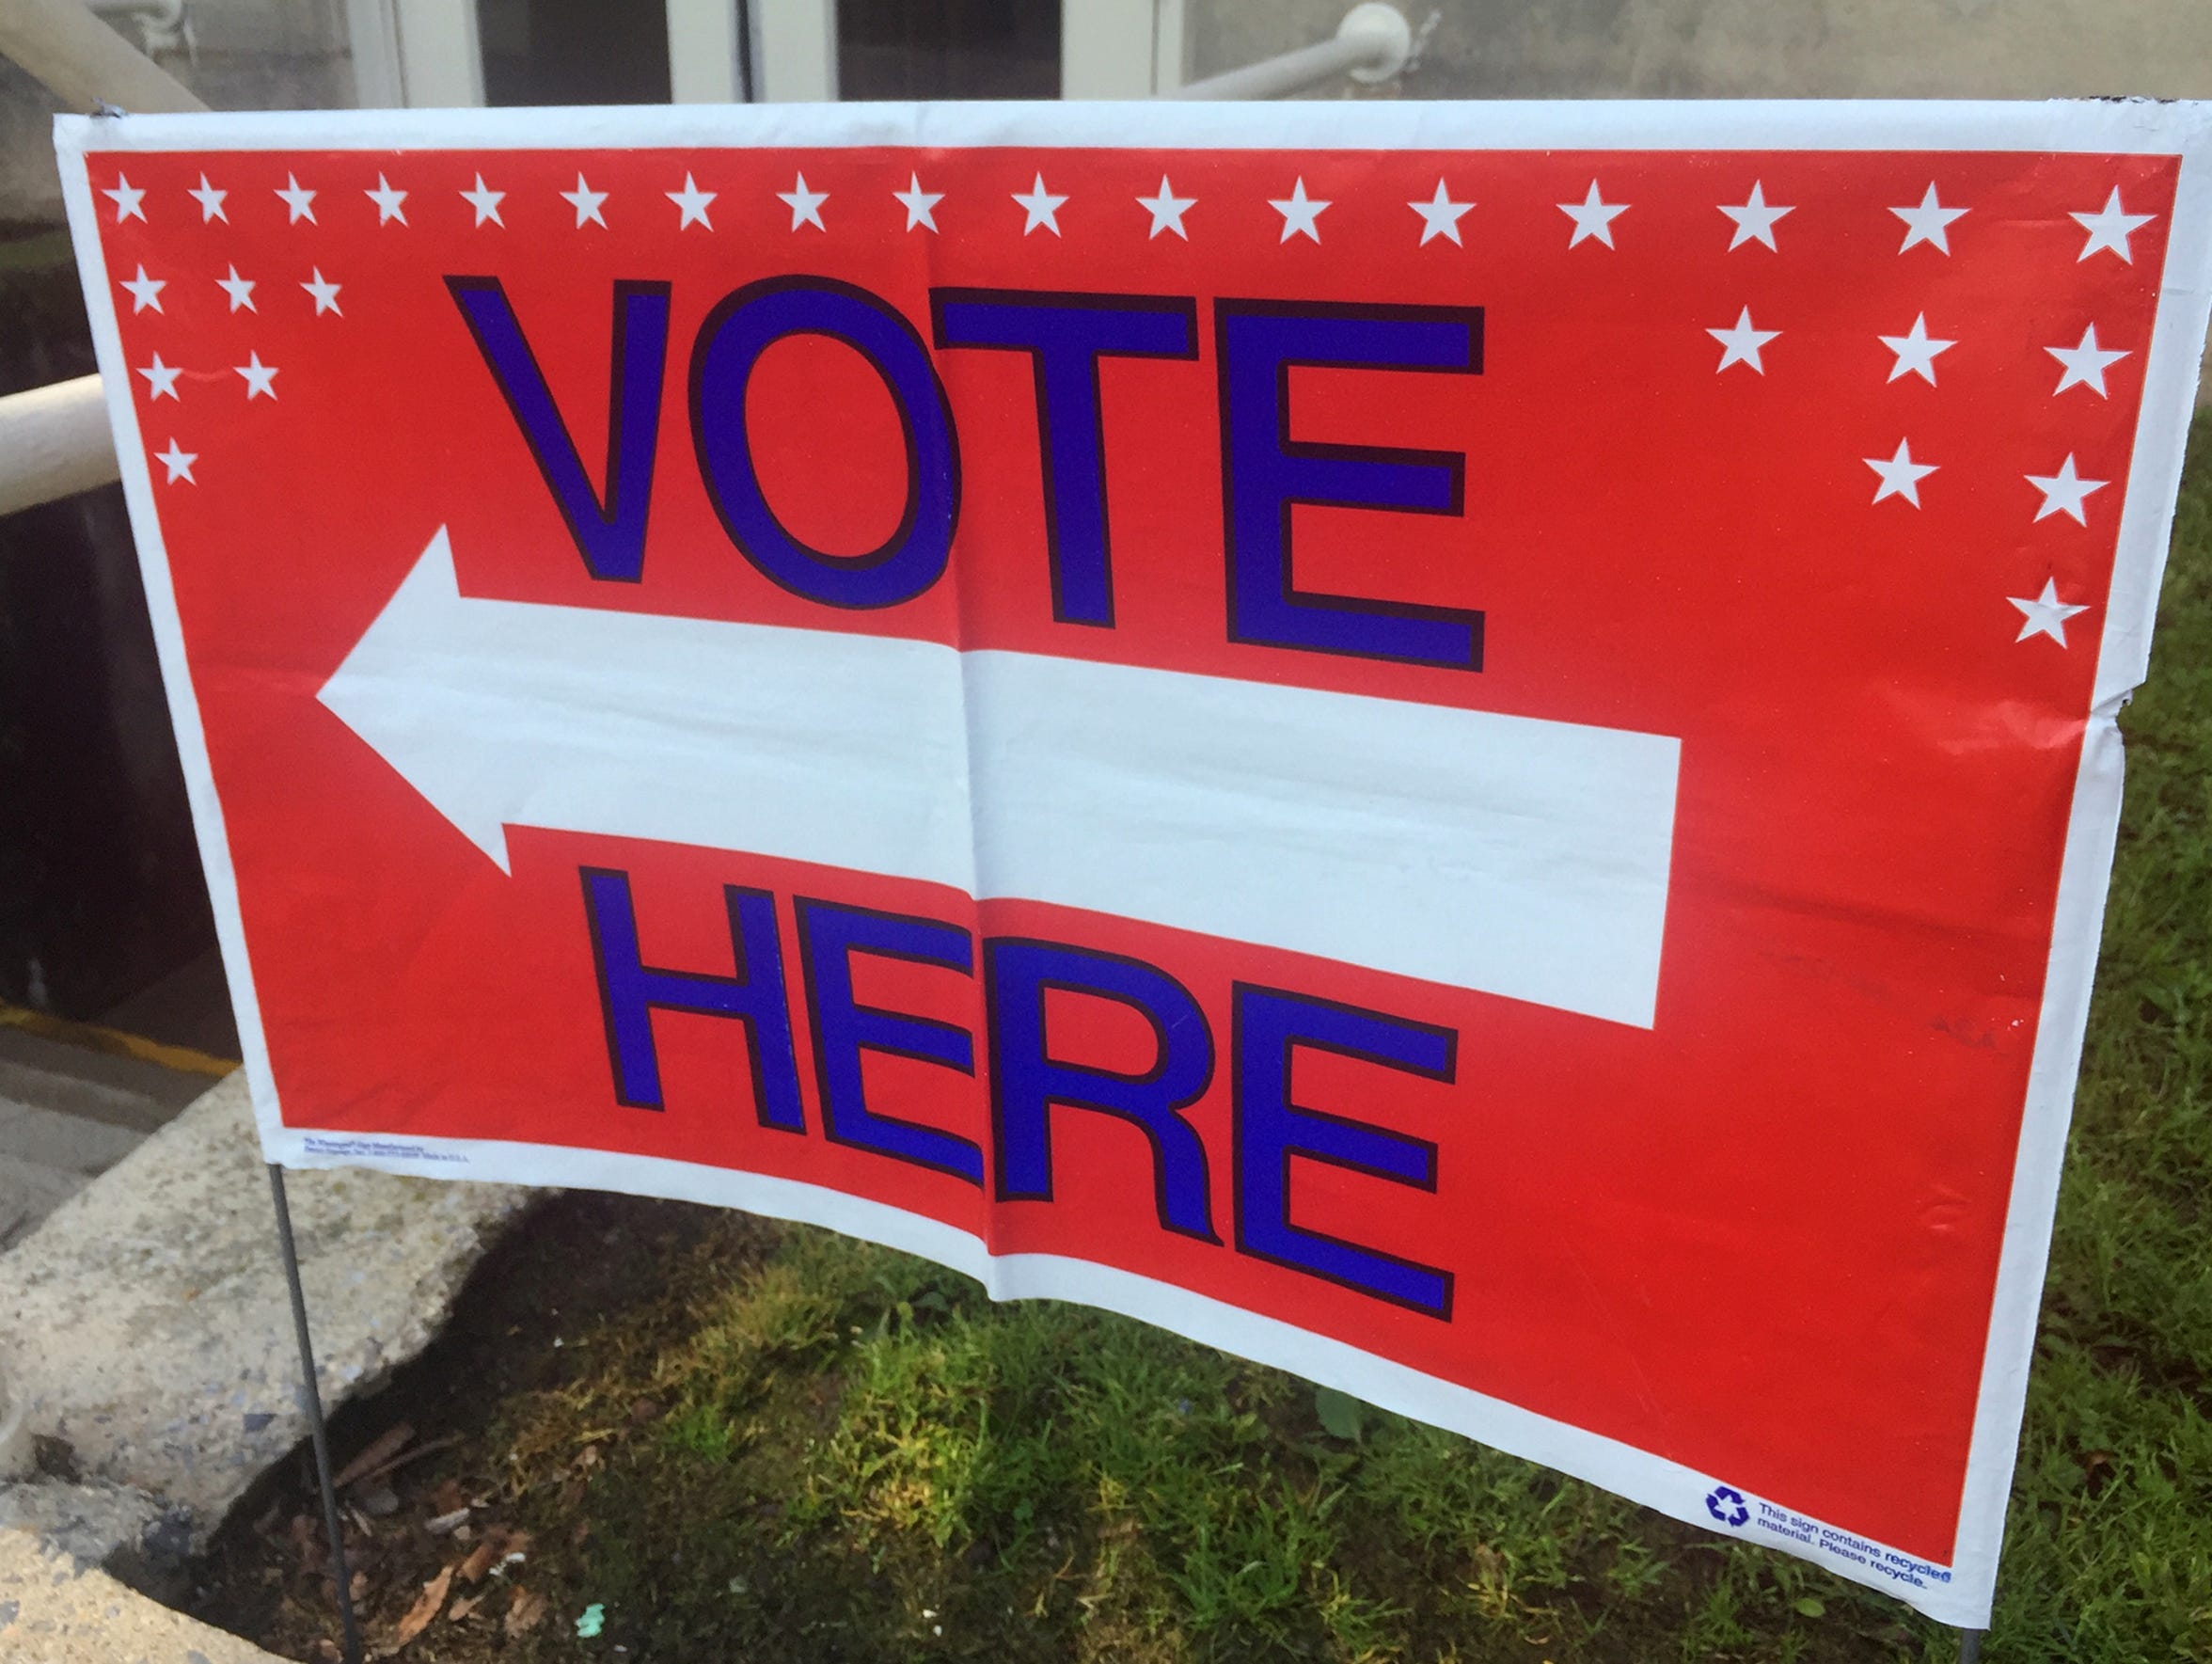 A sign directs voters to a polling place on primary election day on Tuesday, May 15, 2018.